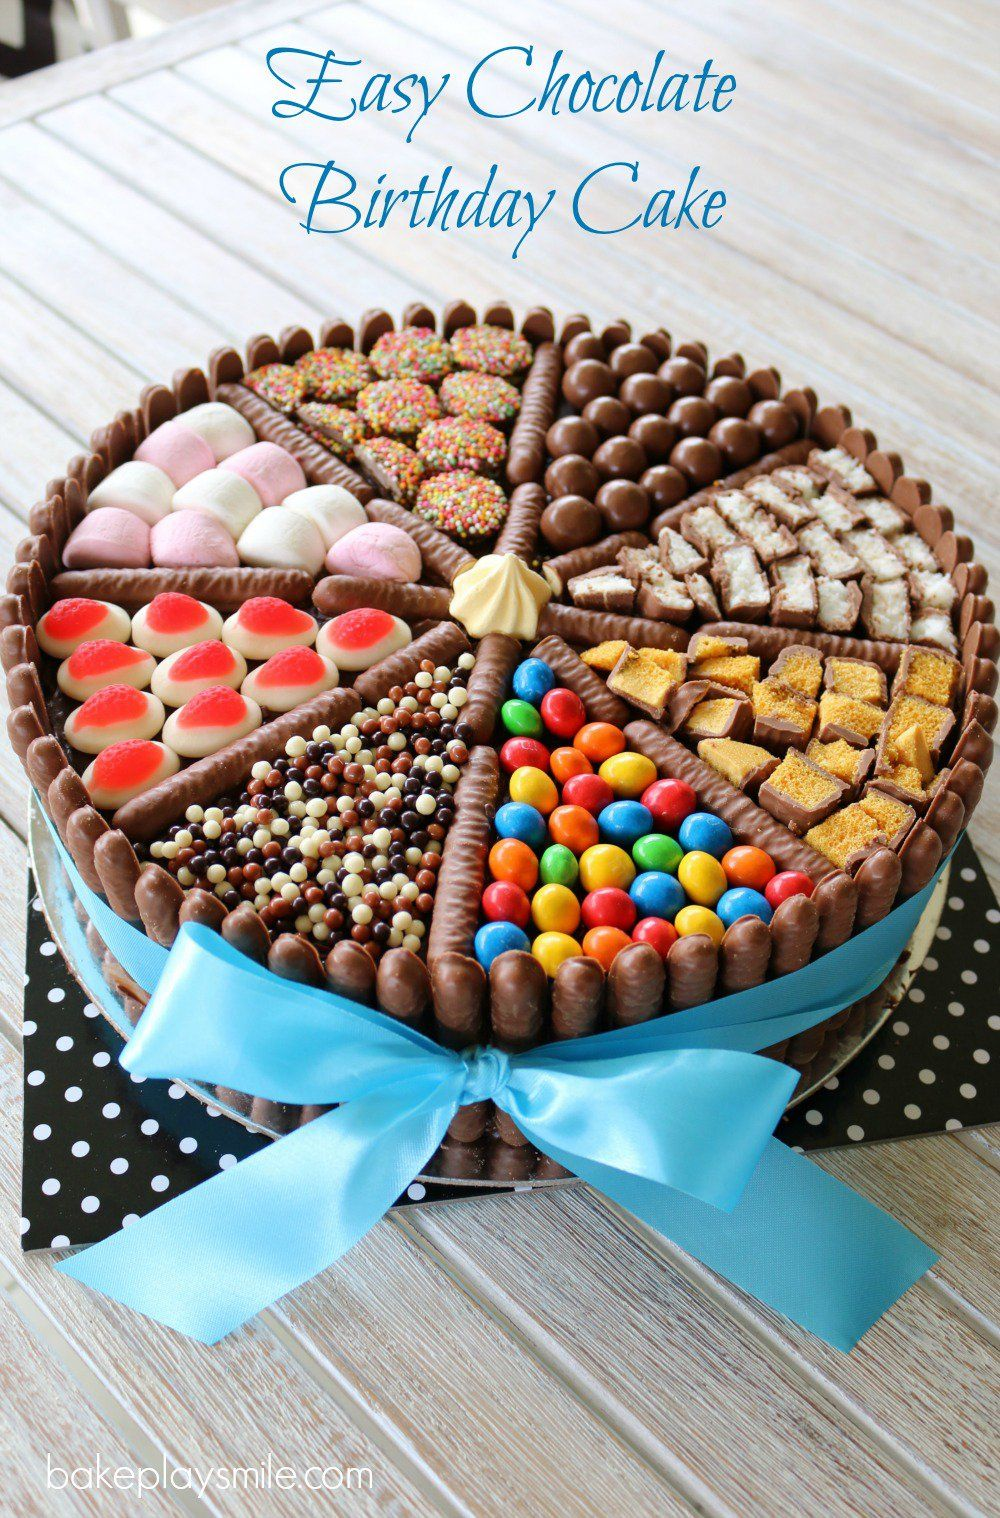 Lollies Marshmallows And Chocolates This Really Is A Chocoholics Delight Chcolate Box Cake Easy Birthday Best Recipe